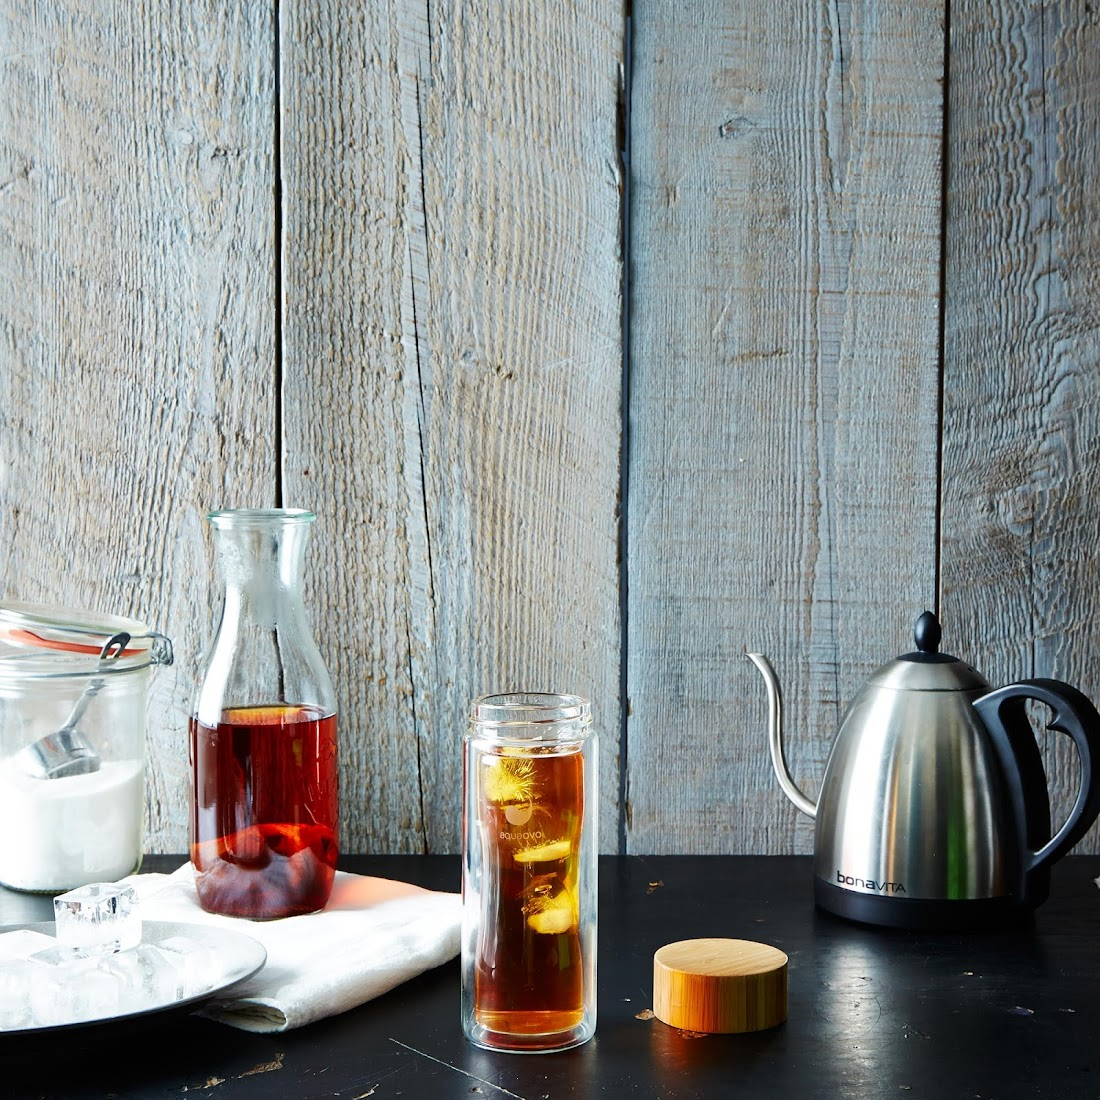 Water Bottle on Provisions by Food52